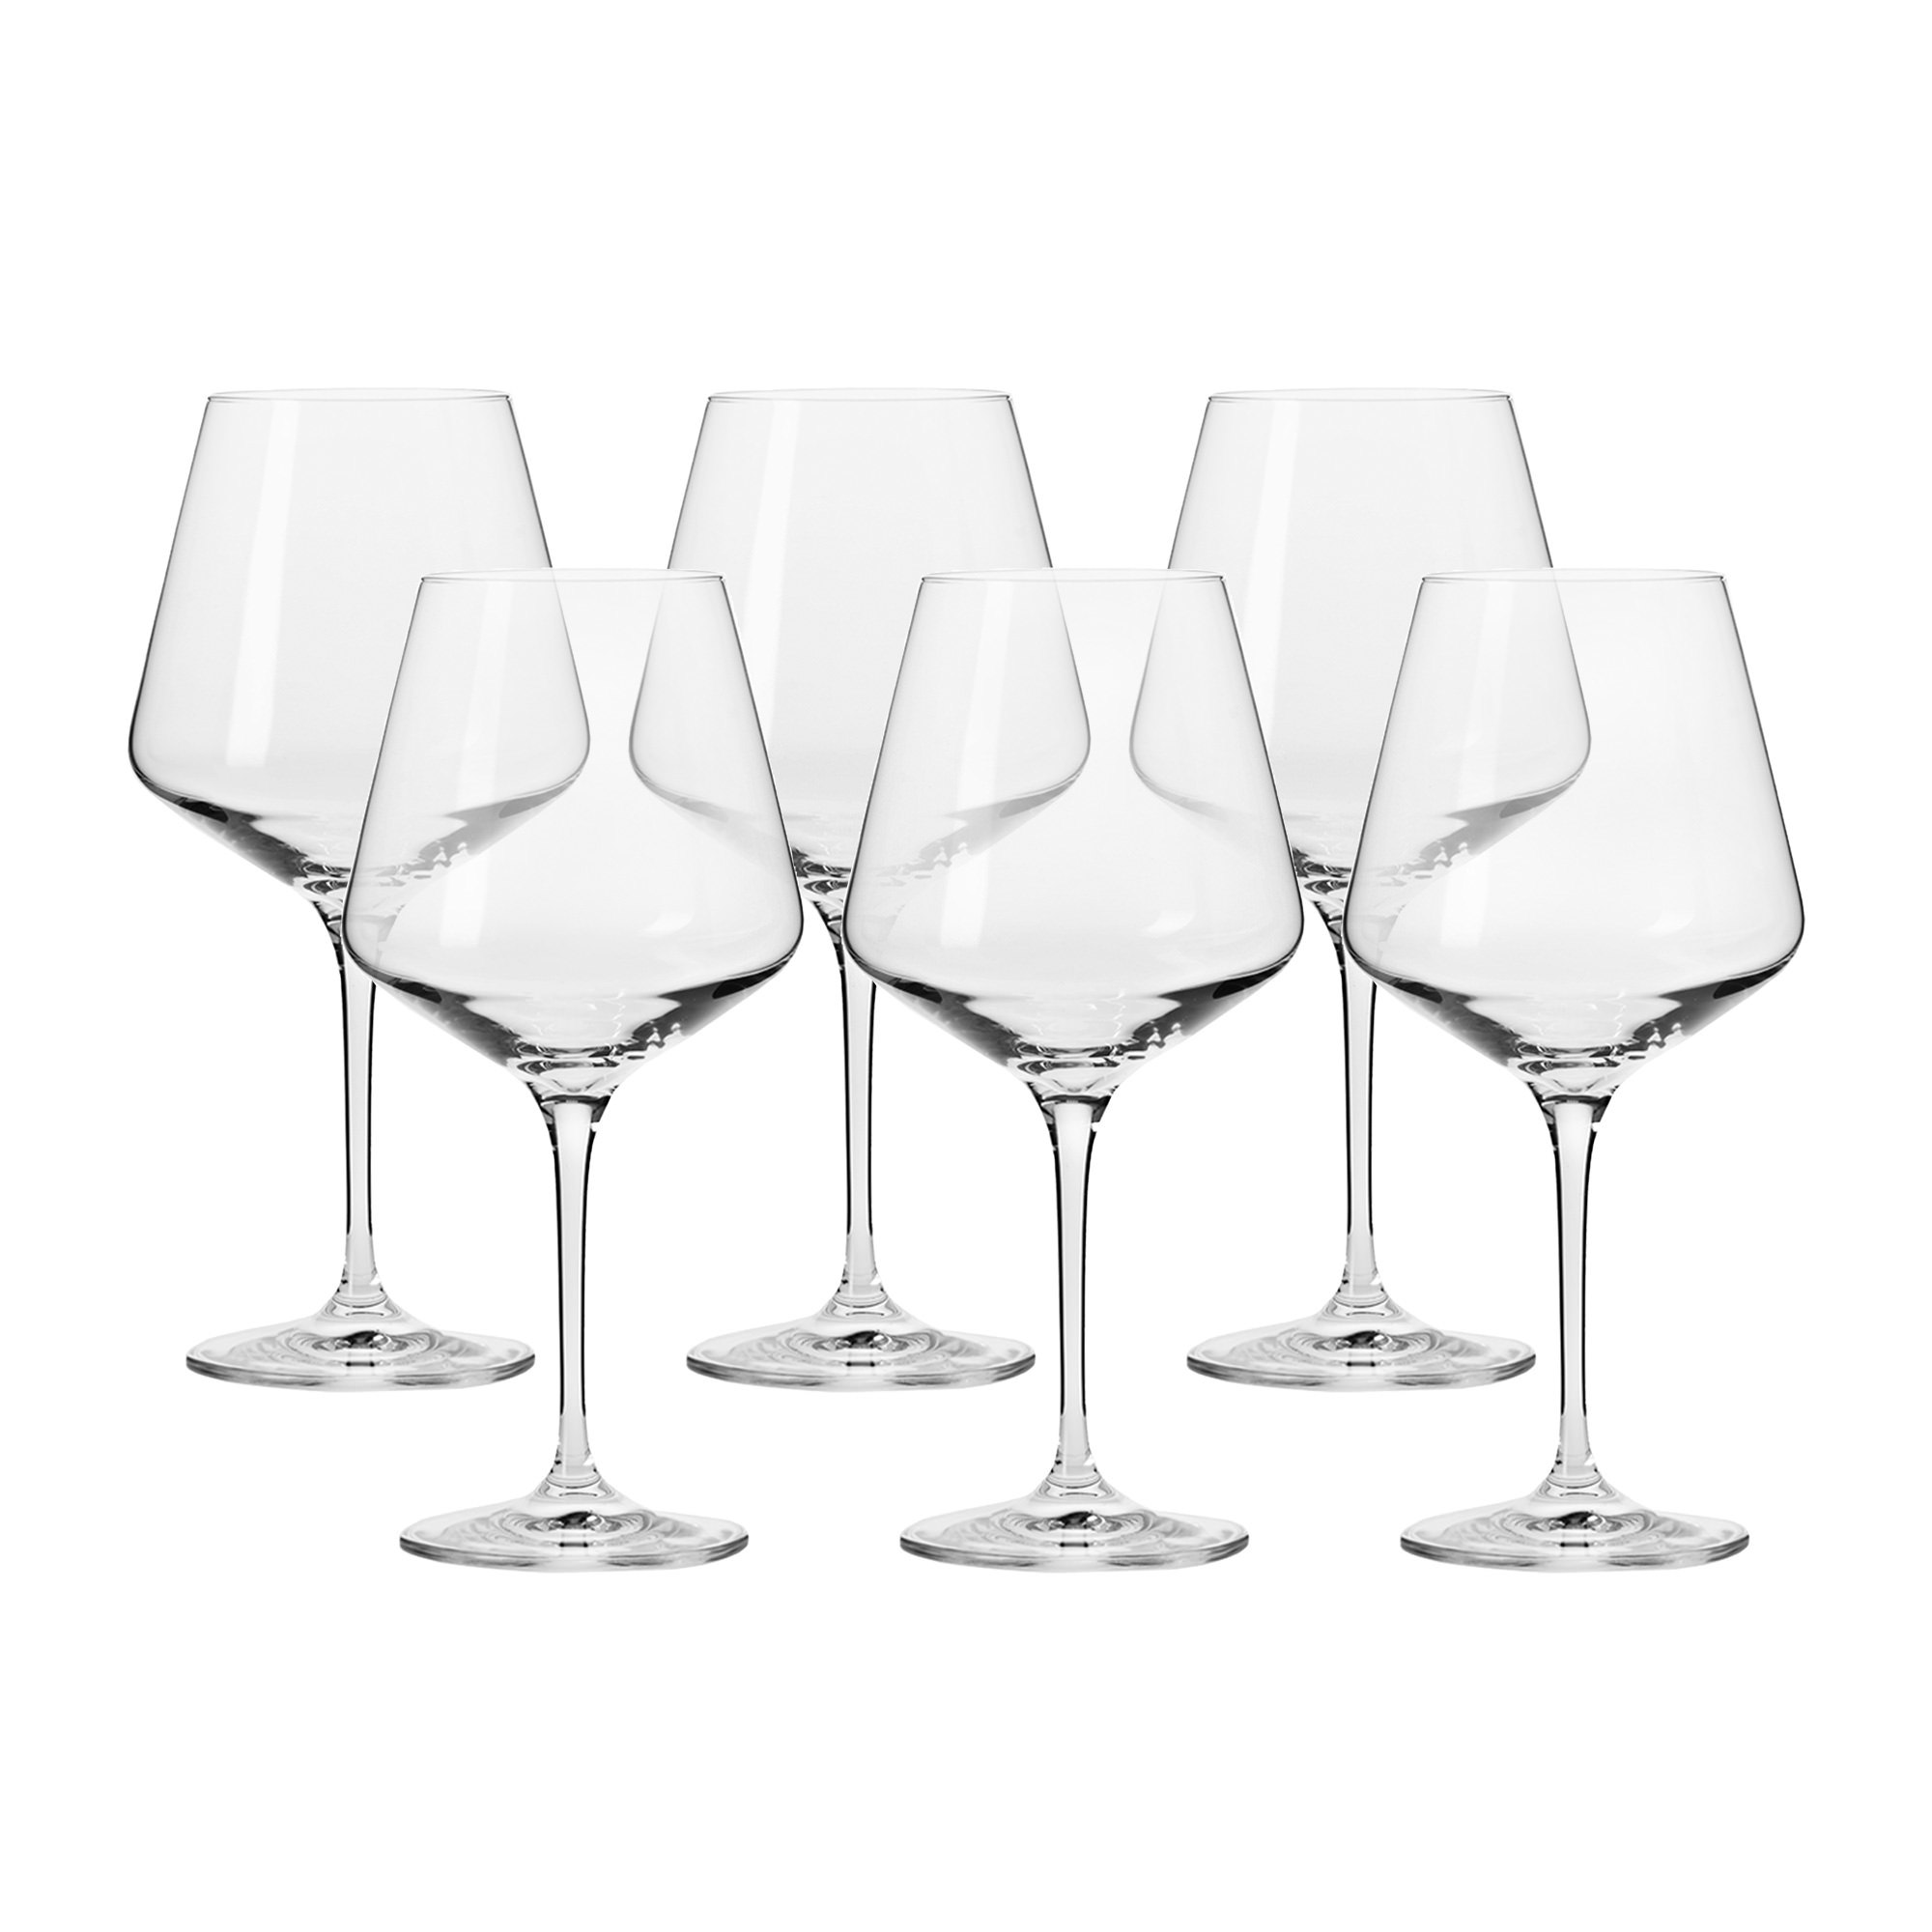 Krosno Avant Garde Wine Glass 460ml Set of 6